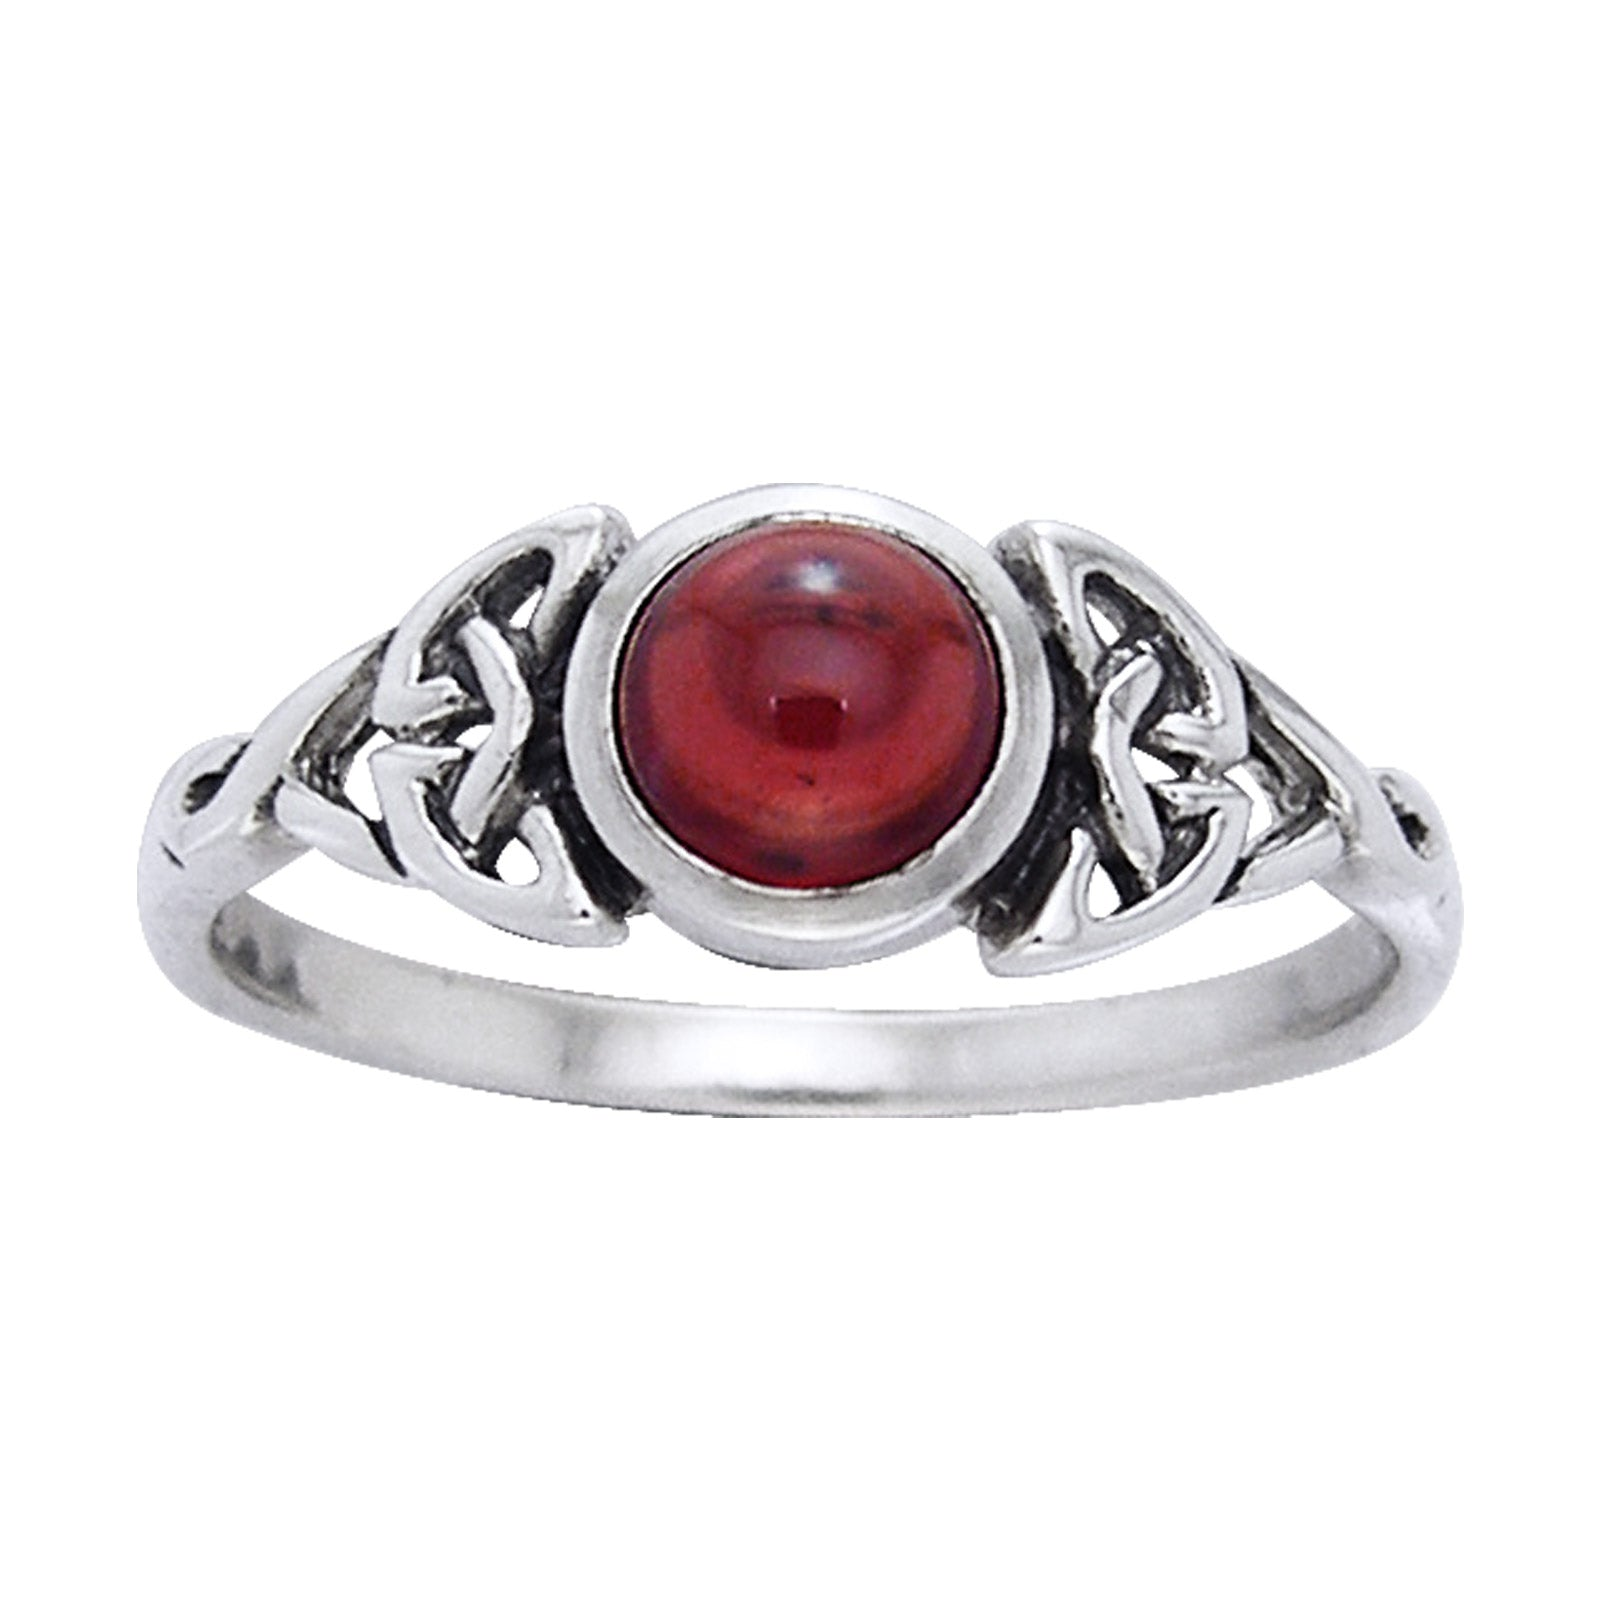 Genuine Garnet Celtic Knot Ring with Round Gemstone Sterling Silver - Silver Insanity